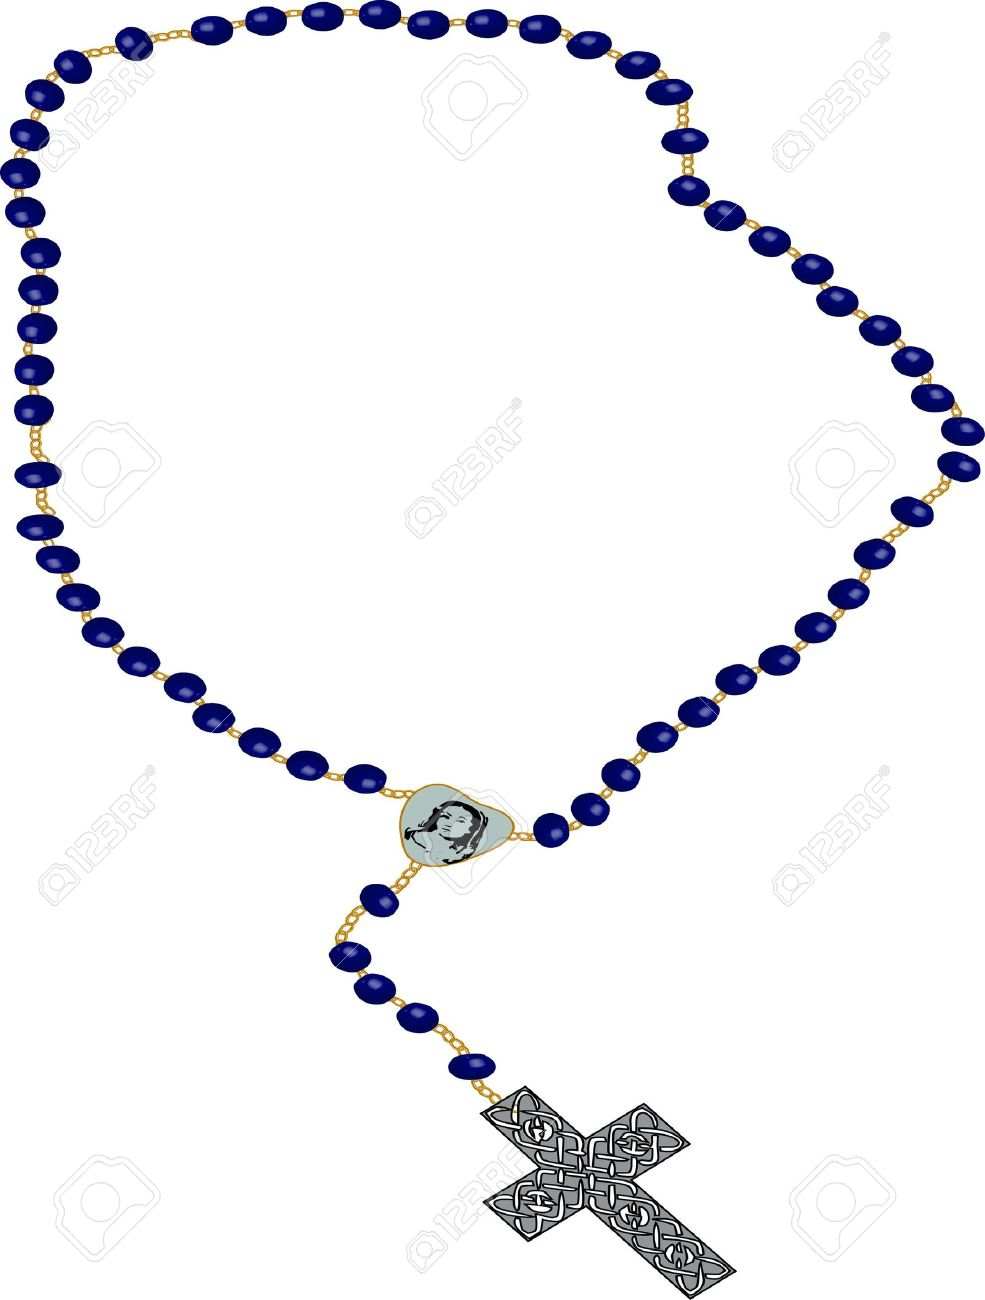 985x1300 Free Catholic Clipart Of The Rosary Beads